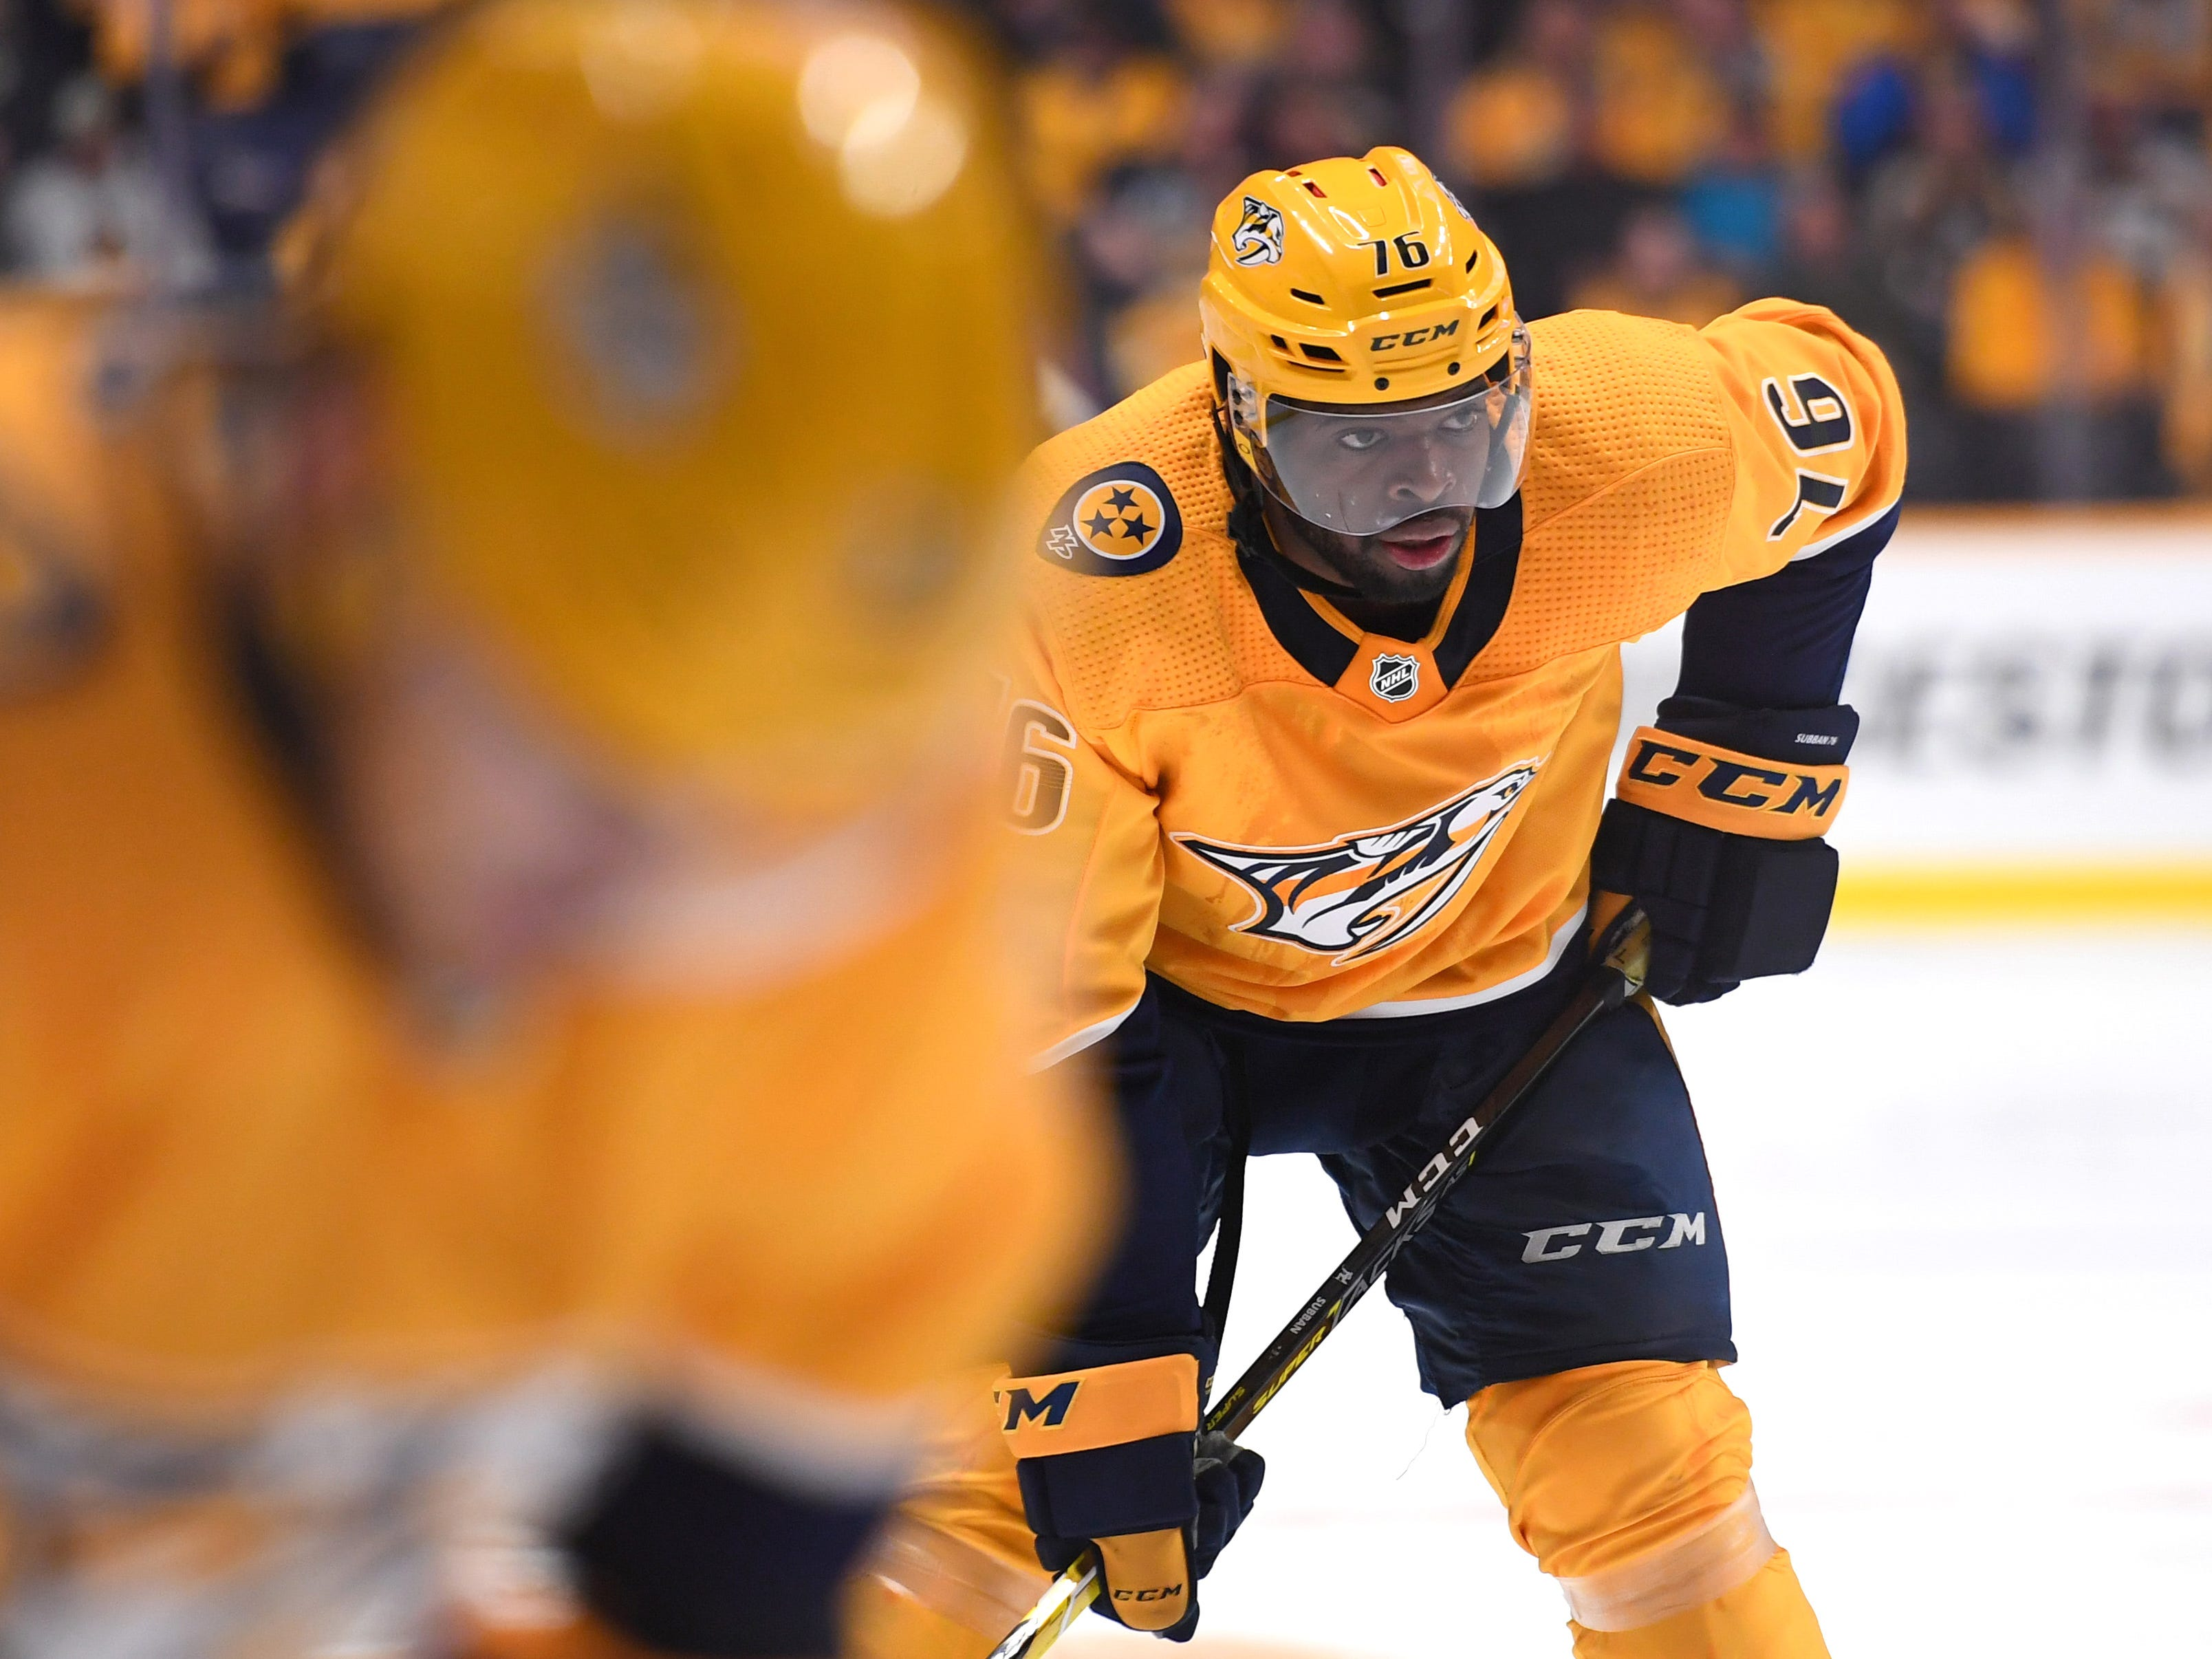 Nashville Predators defenseman P.K. Subban (76) lines up for a face off during the first period against the Dallas Stars at Bridgestone Arena.